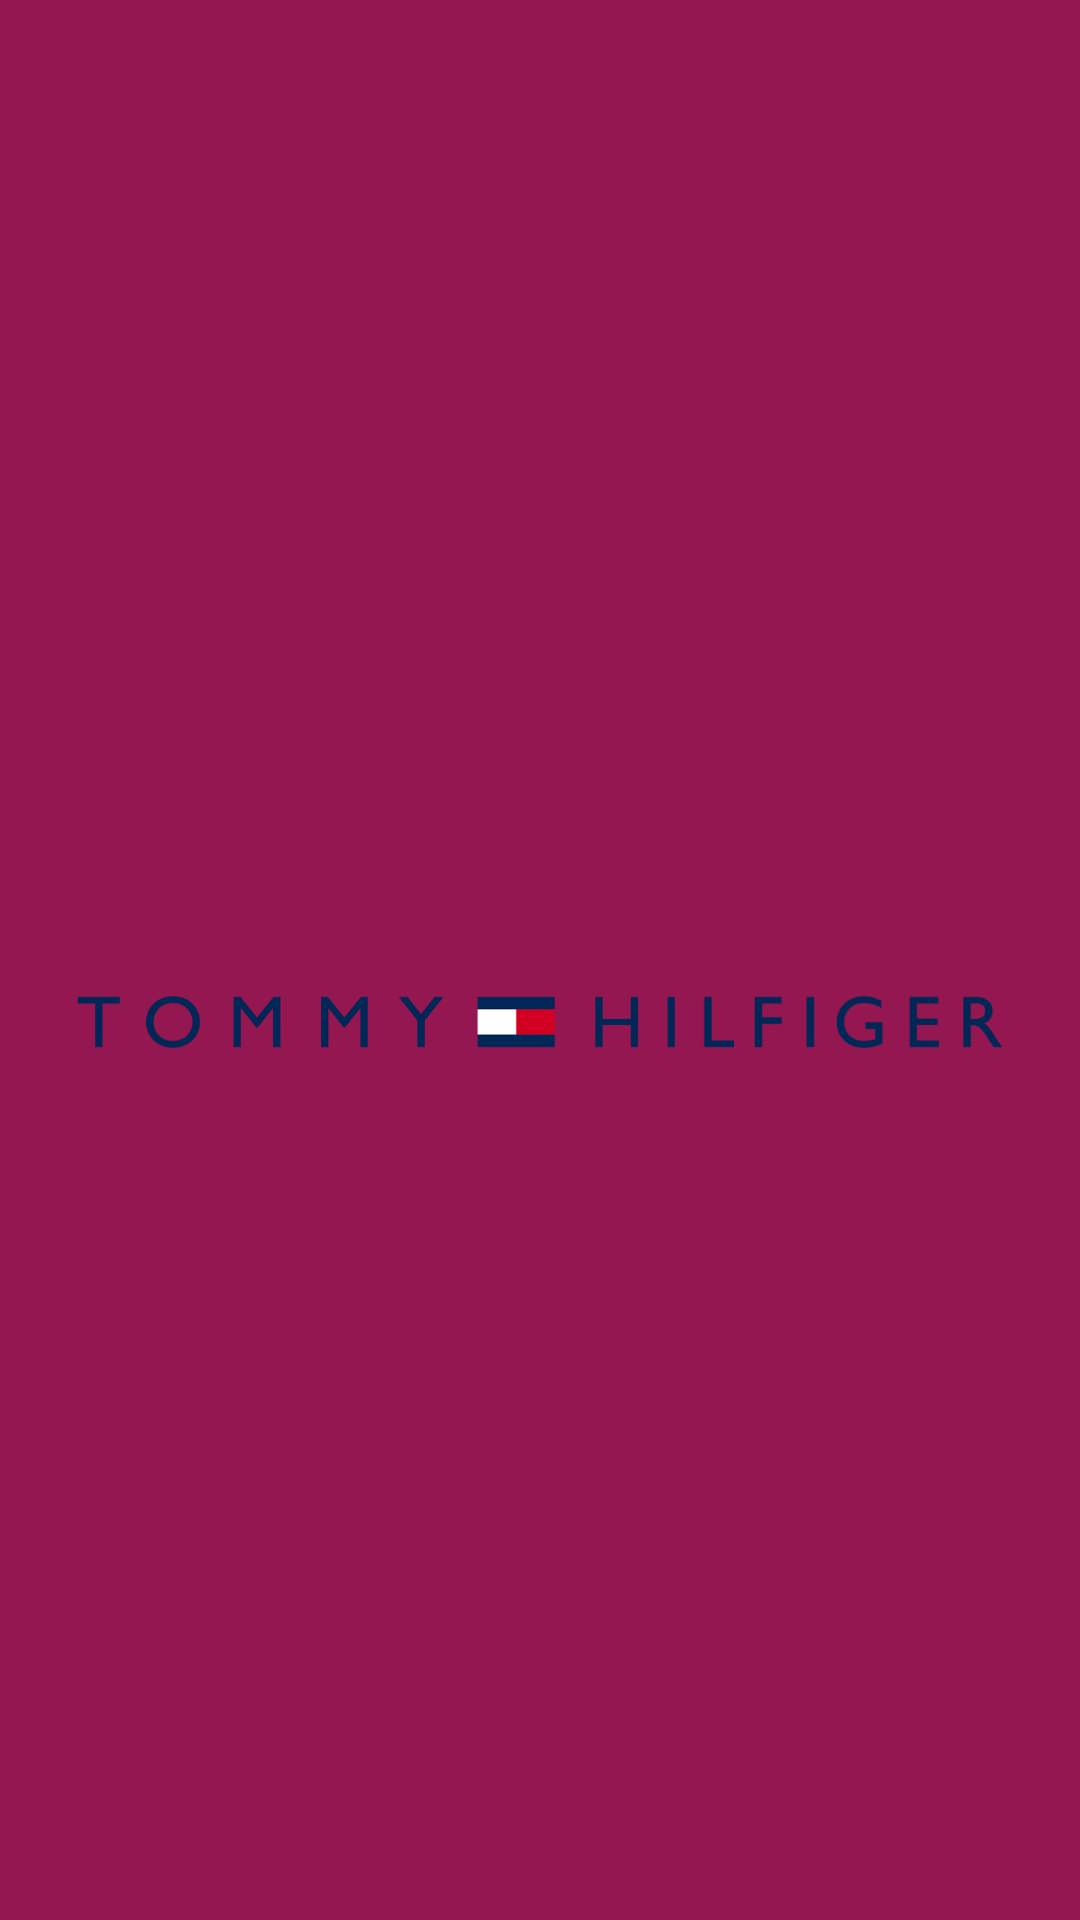 tommyhilfiger08 - TOMMY HILFIGER/トミー・ヒルフィガーの高画質スマホ壁紙20枚 [iPhone&Androidに対応]